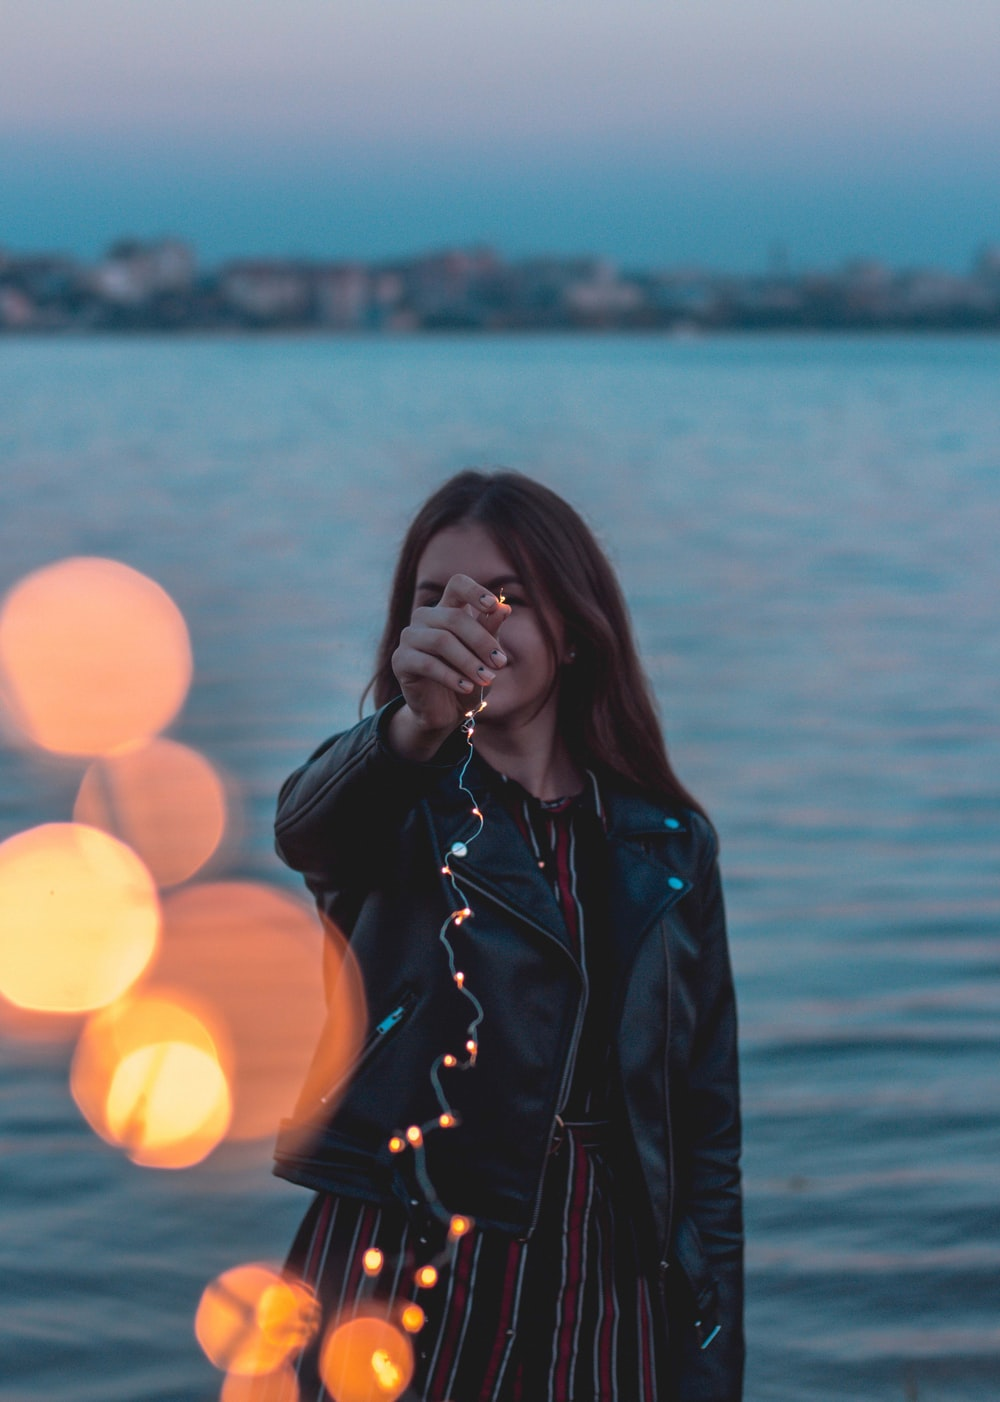 woman holding LED string lights near body of water